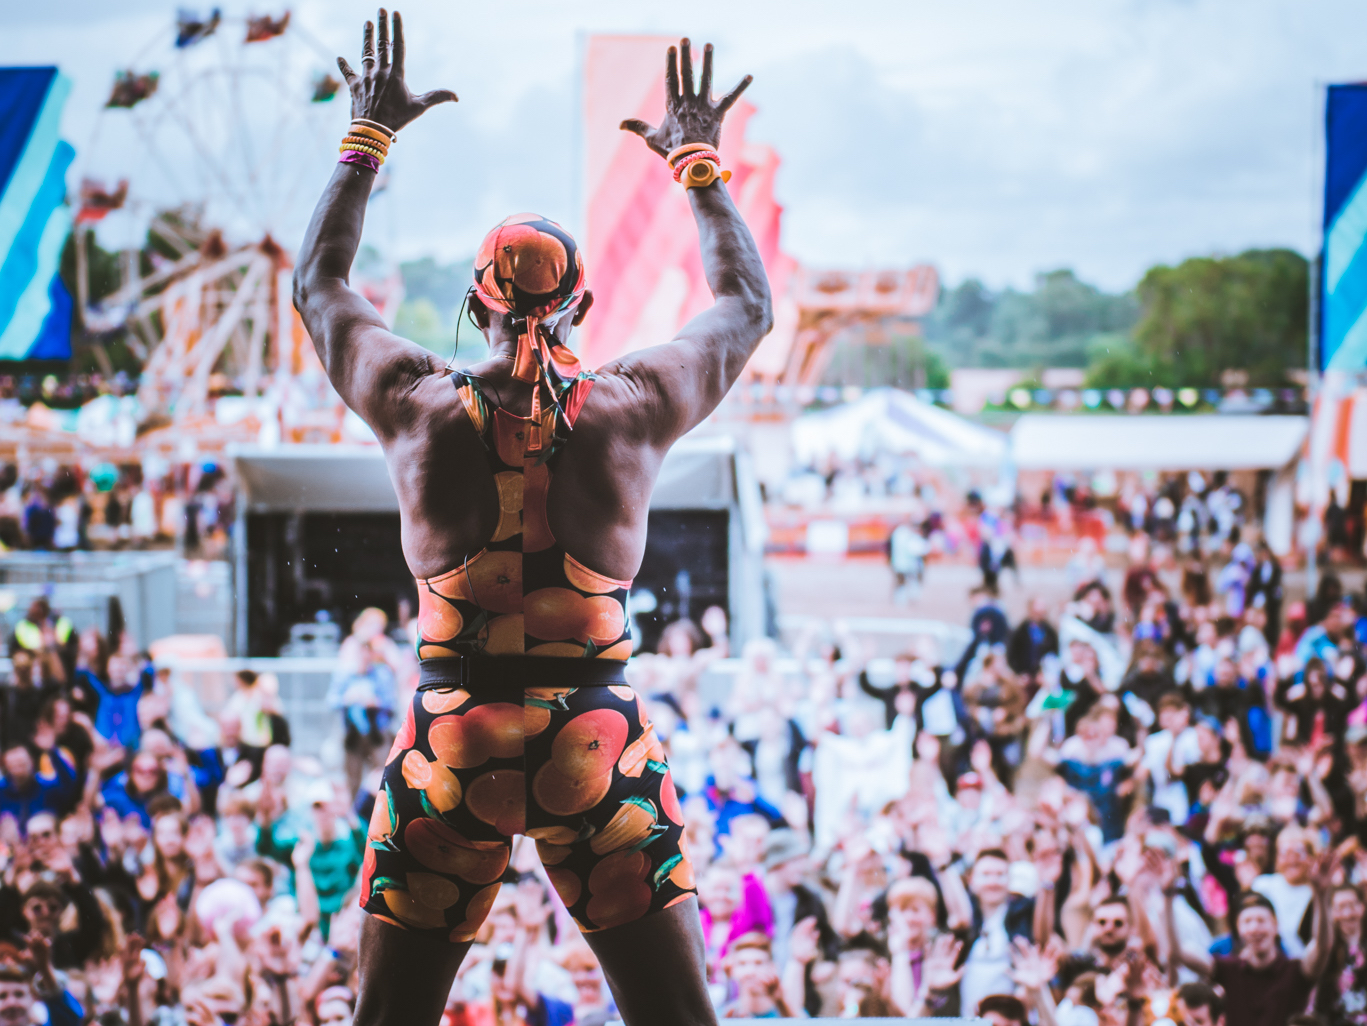 We got Mr Motivator to review some of the best bands at Truck Festival